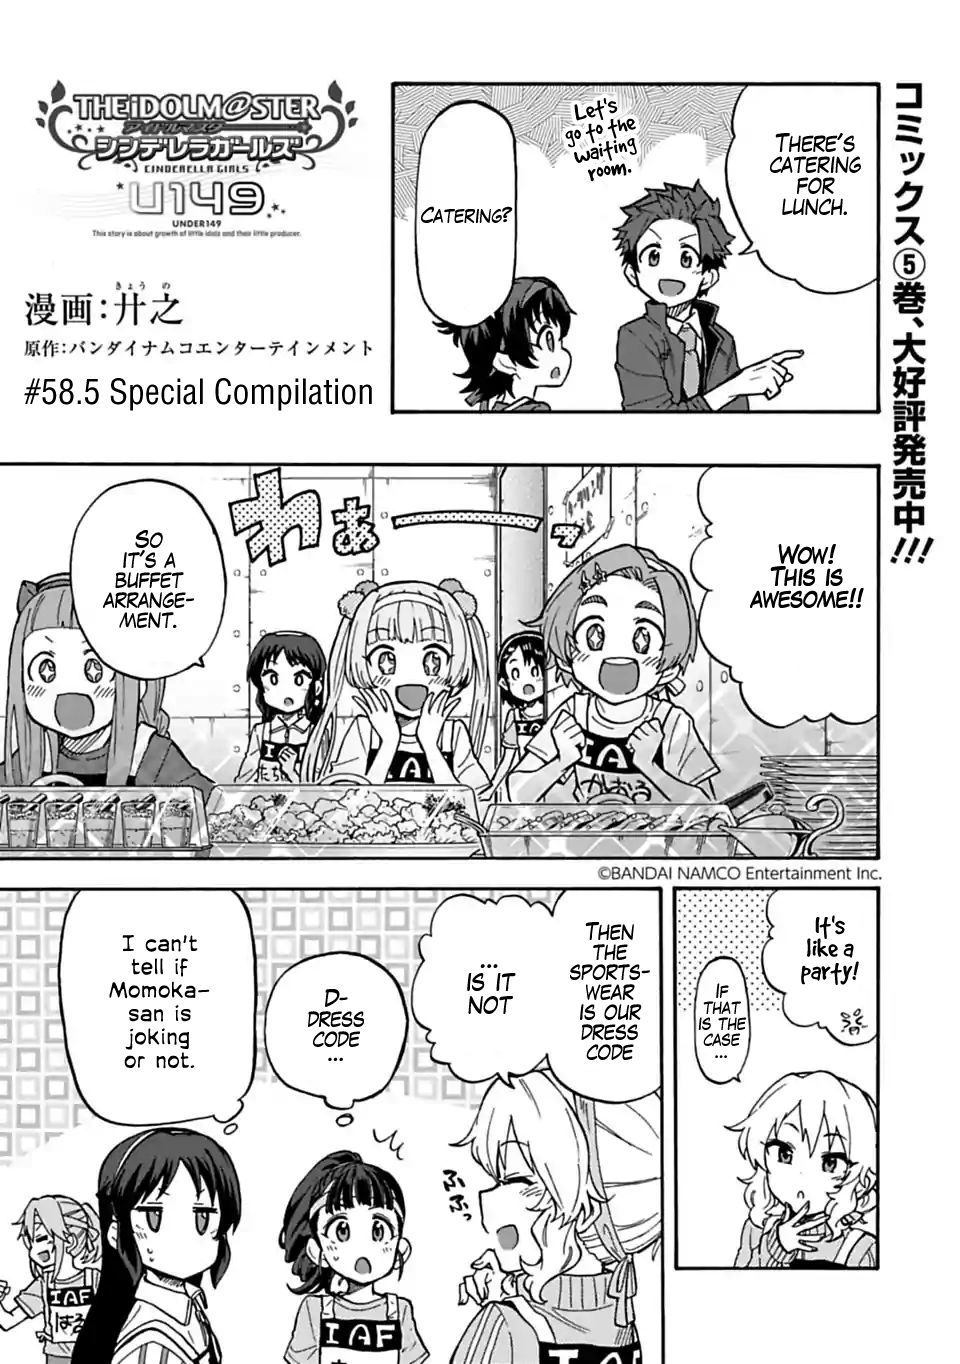 Cinderella Girls - U149 - chapter 58.5 - #1